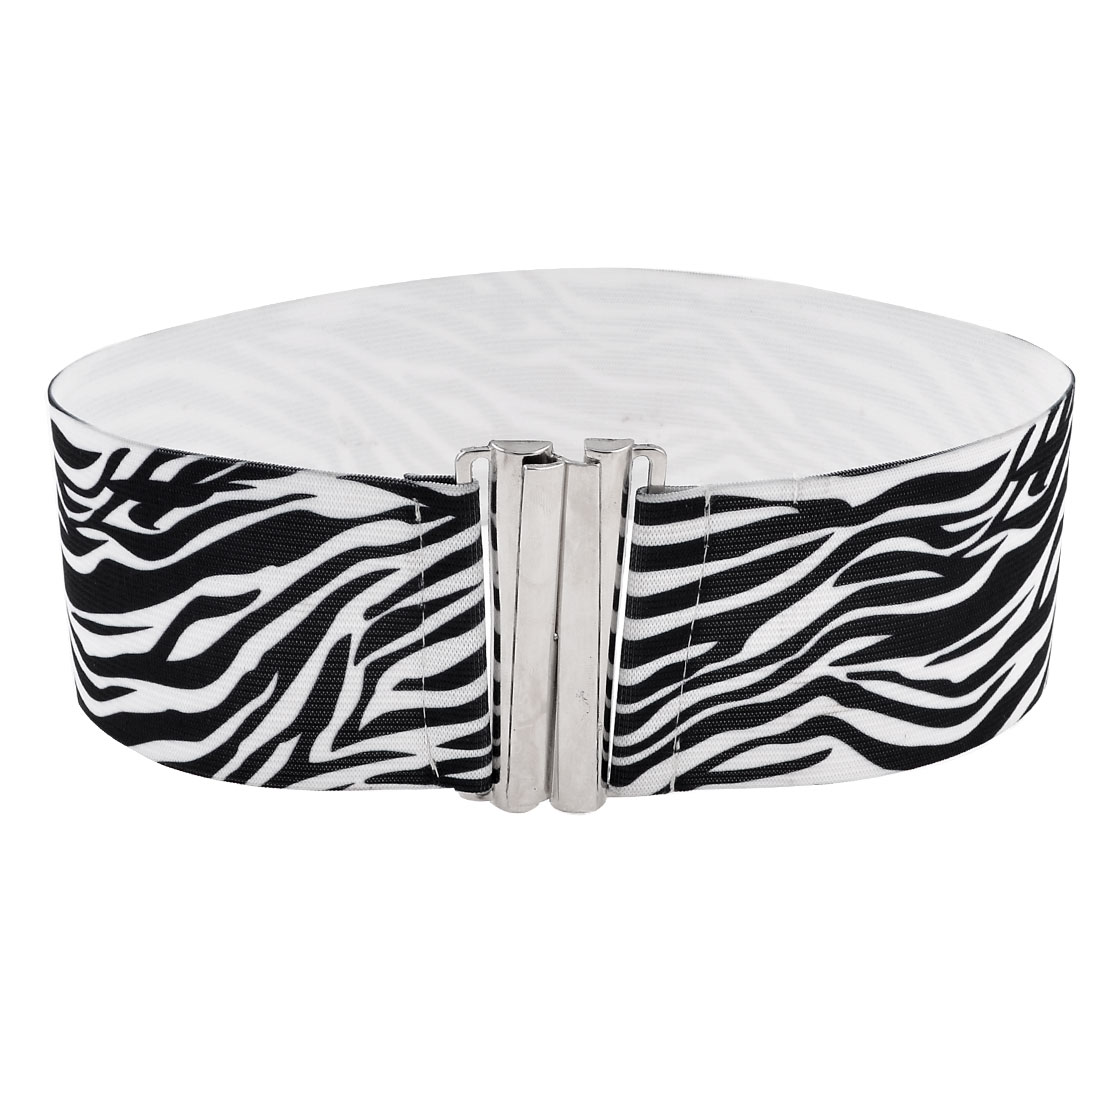 White Black Zebra Pattern Interlocking Buckle Belt for Ladies